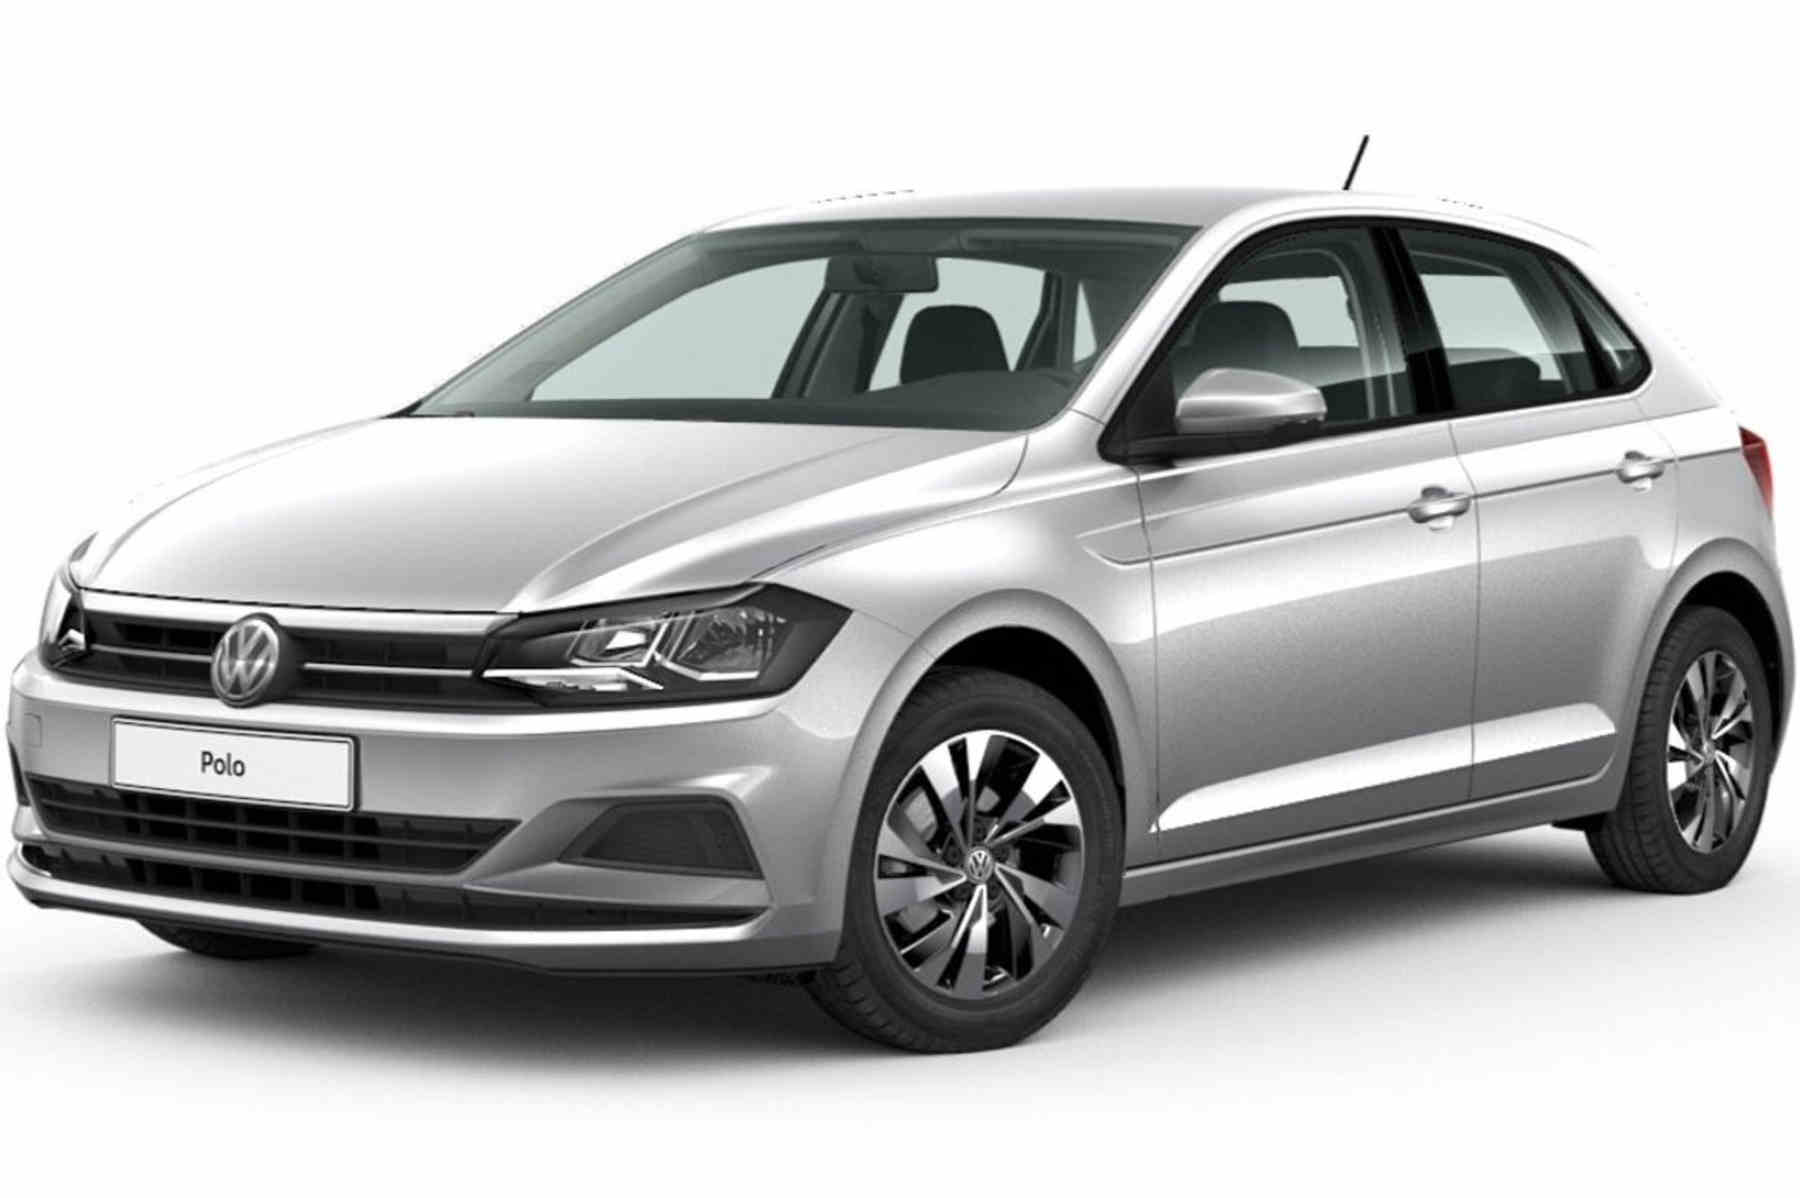 mandataire auto volkswagen polo page 2. Black Bedroom Furniture Sets. Home Design Ideas